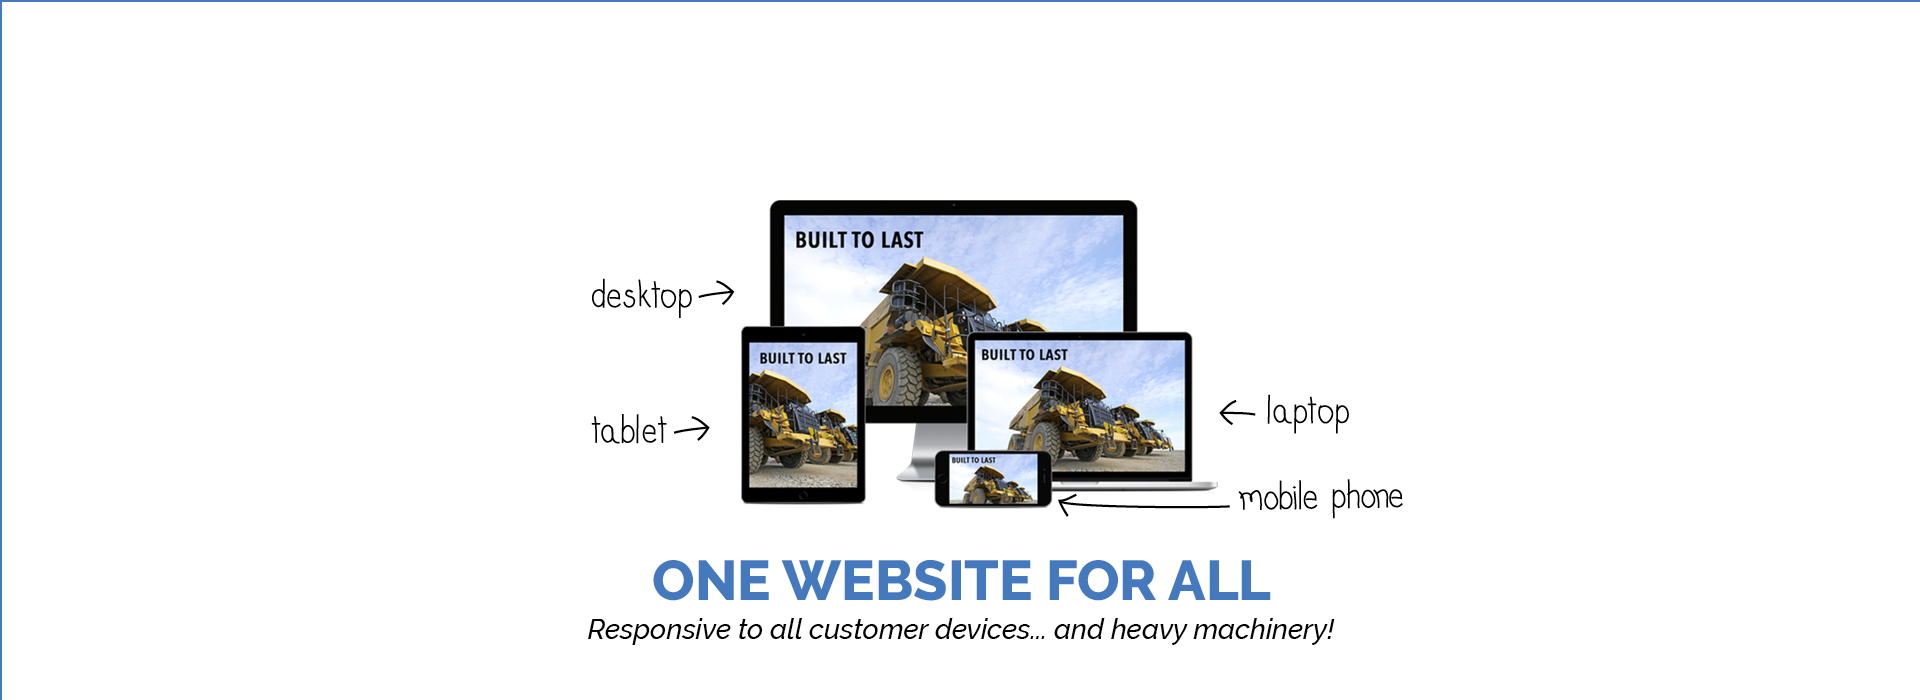 ONE WEBSITE FOR ALL